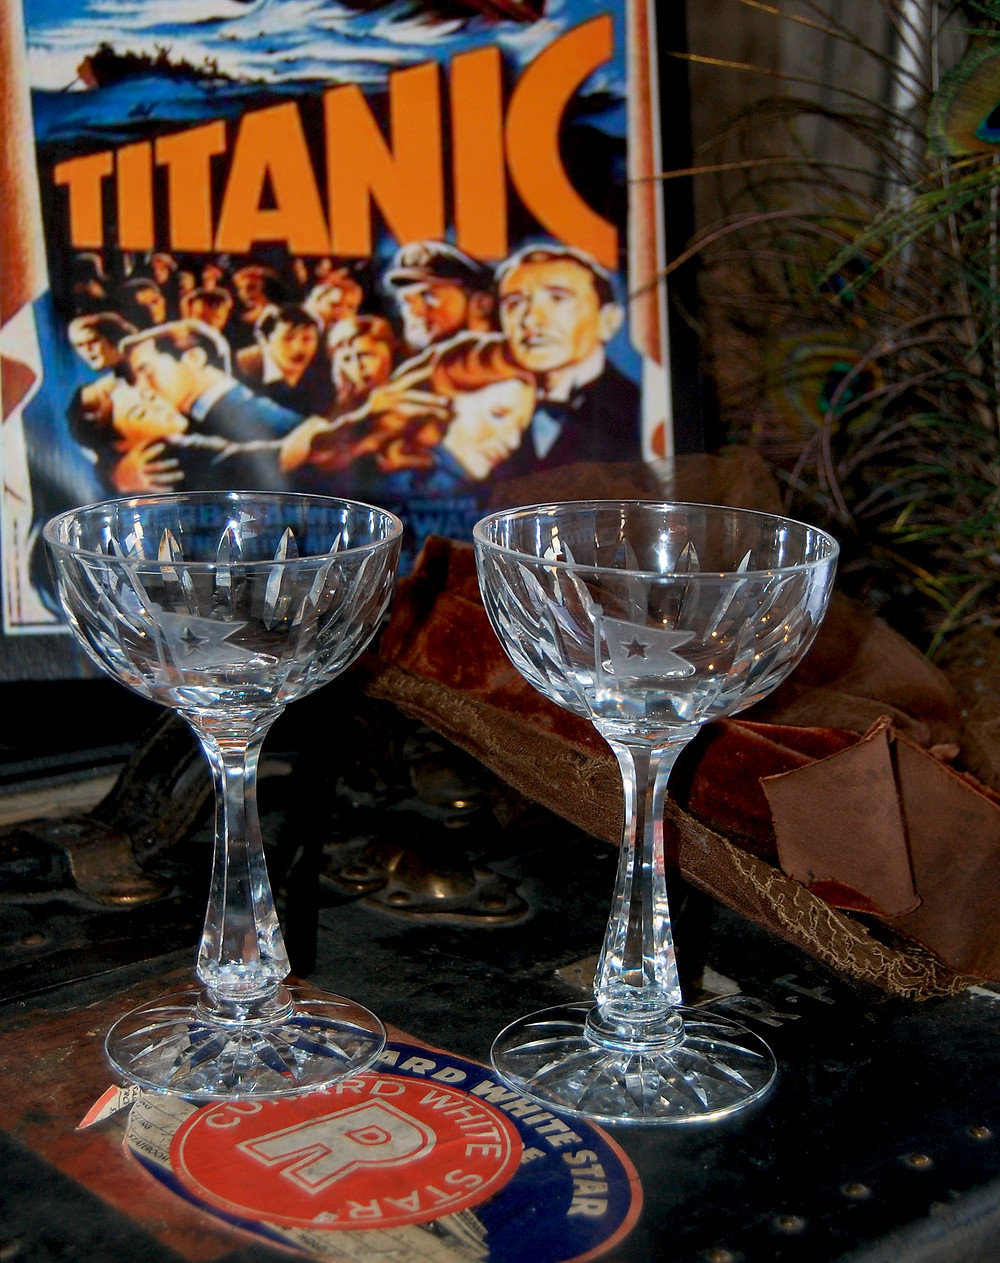 Exquisite replica Titanic goblets cut by Hawkes Crystal Master Cutter Aidan J. Scully.